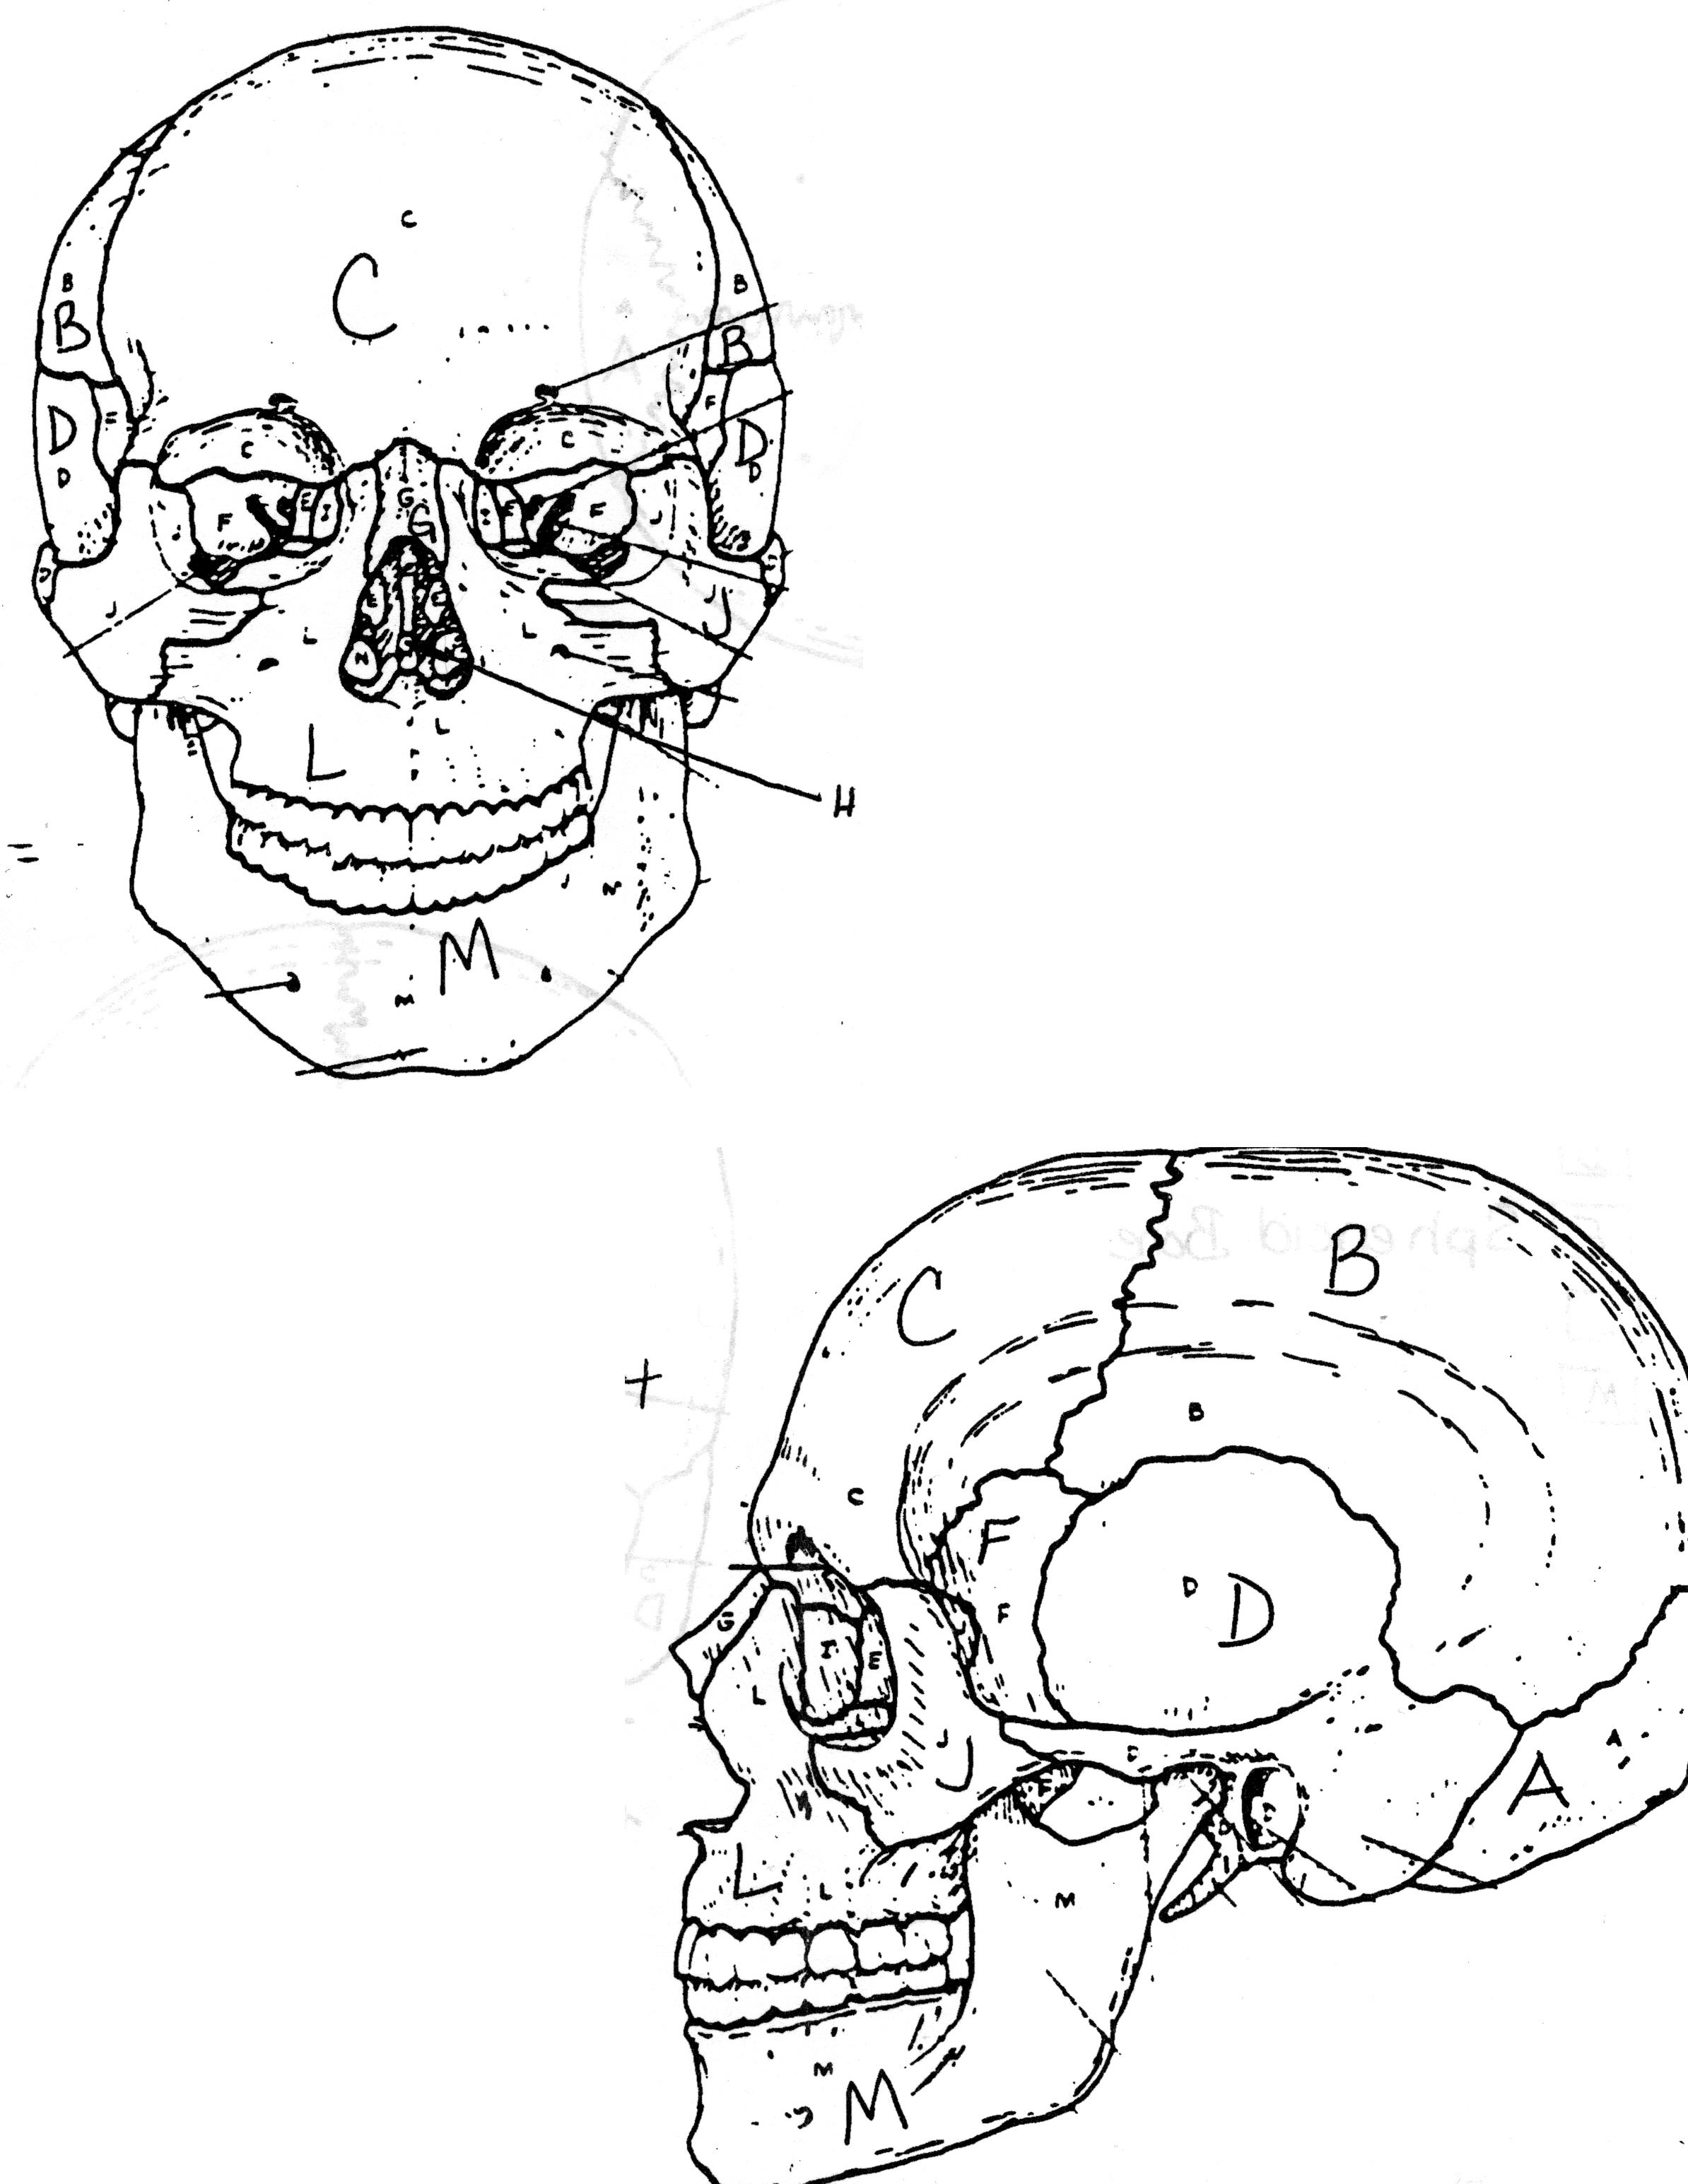 Anatomy Coloring Pages Skull Human Anatomy Coloring Pages Coloringsuite